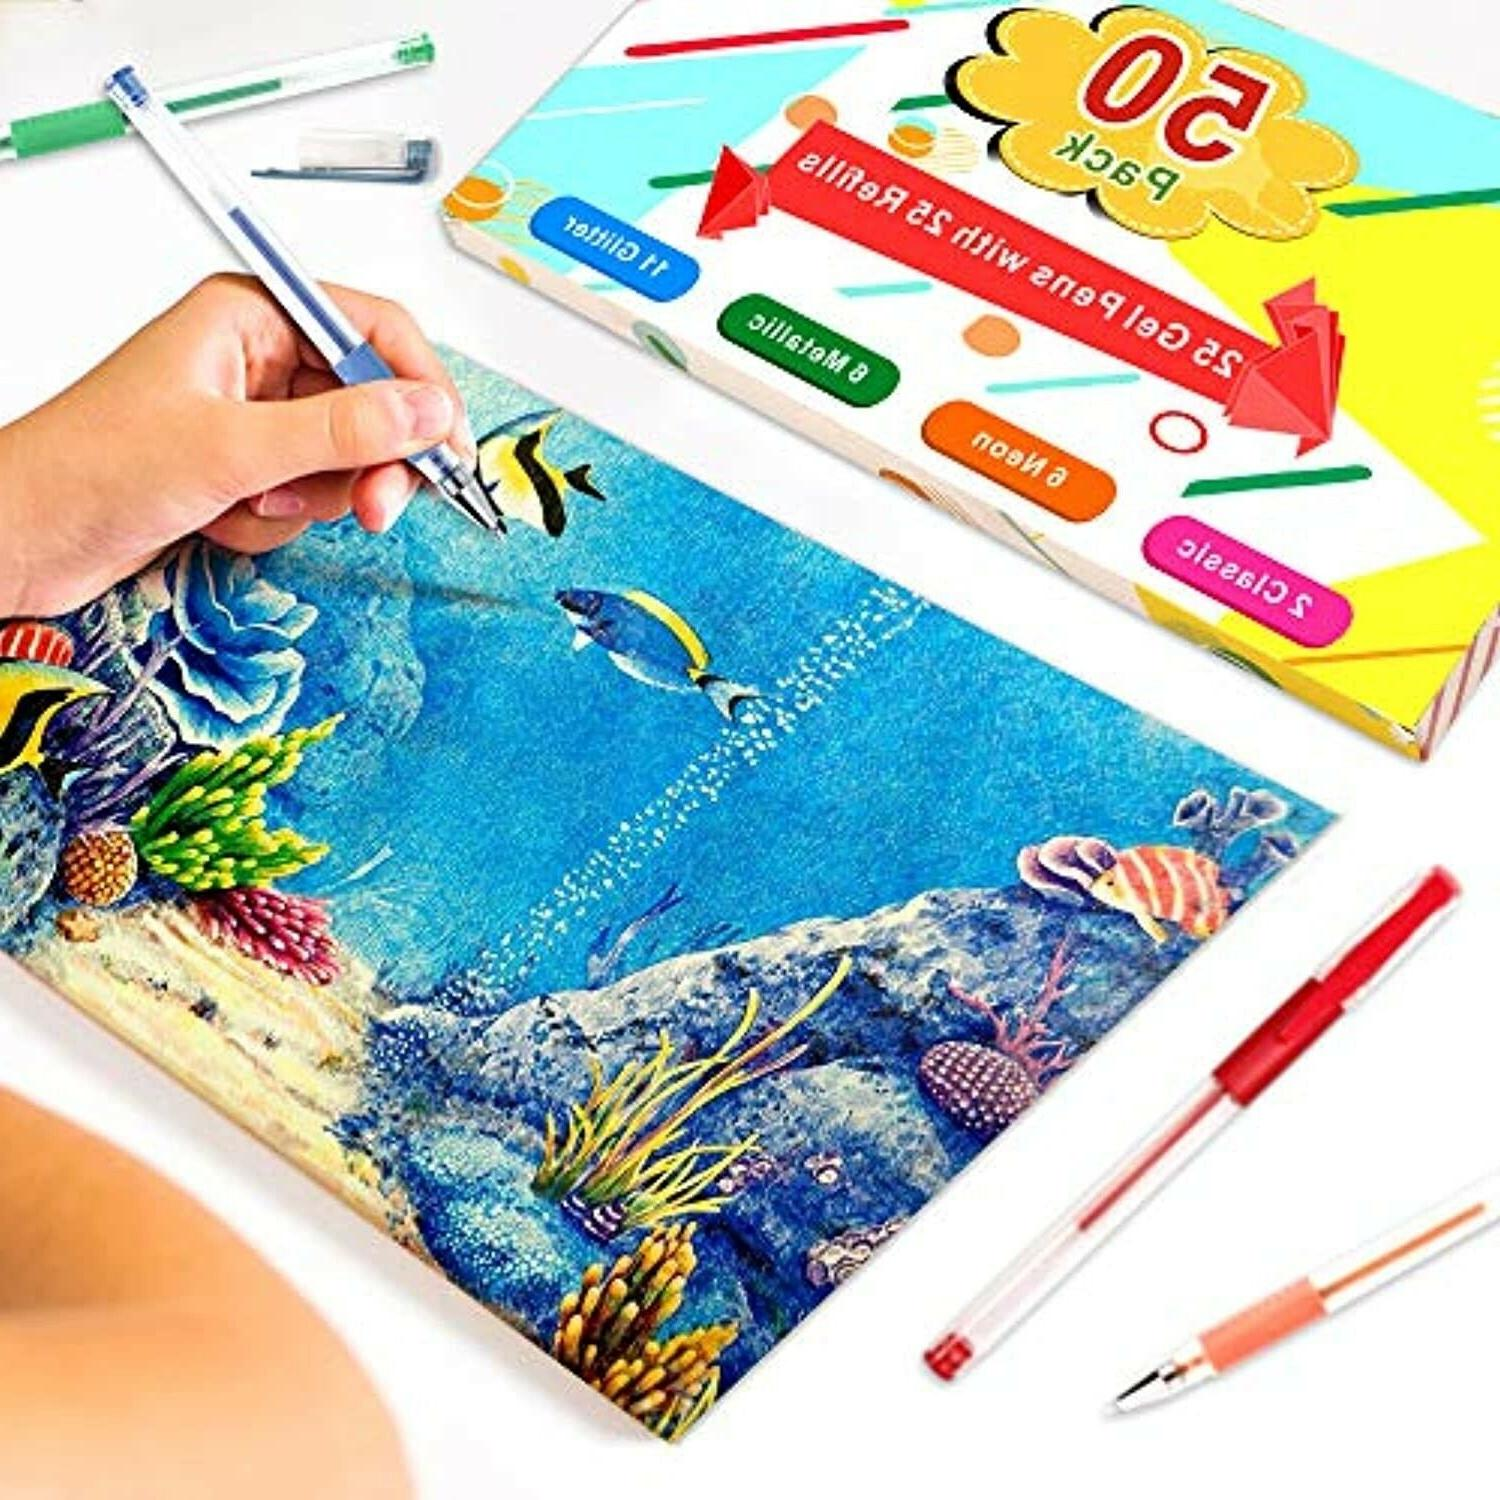 50 Pack Pens For Coloring Kids Crafting Adult Gift